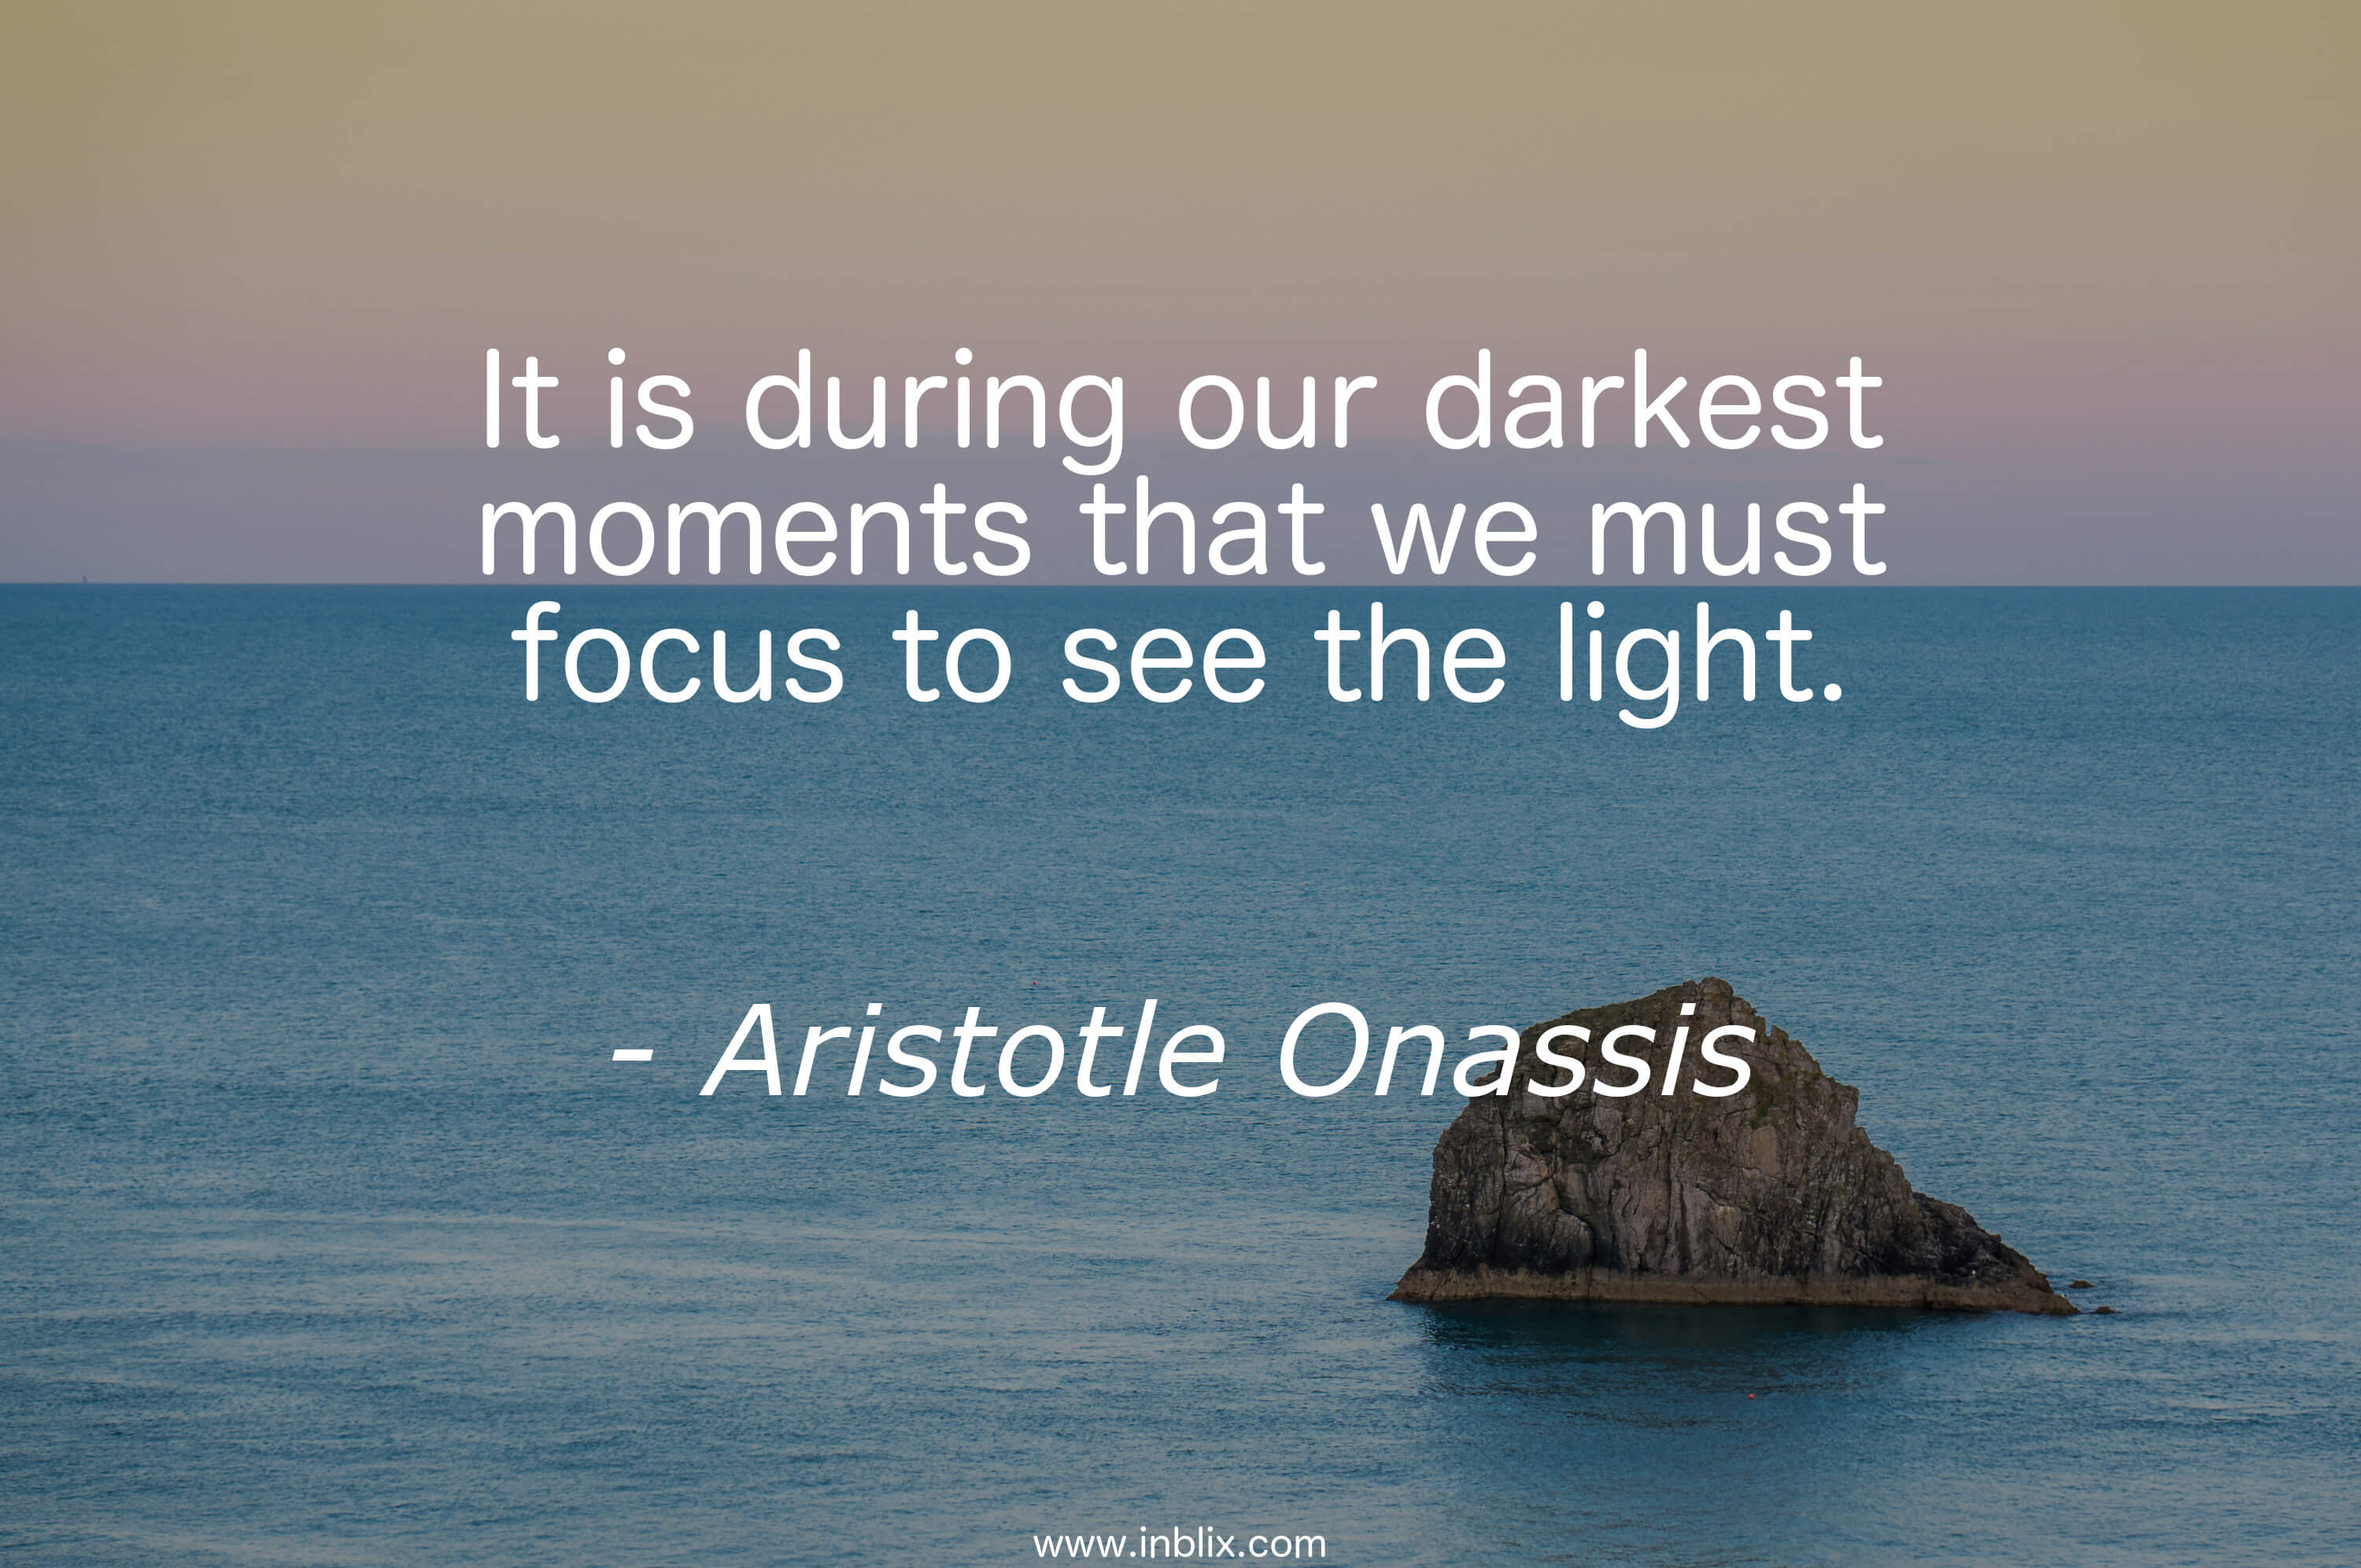 Aristotle Onassis Quotes Quotesgram: It Is During Our Darkest Momen By Aristotle Onassis